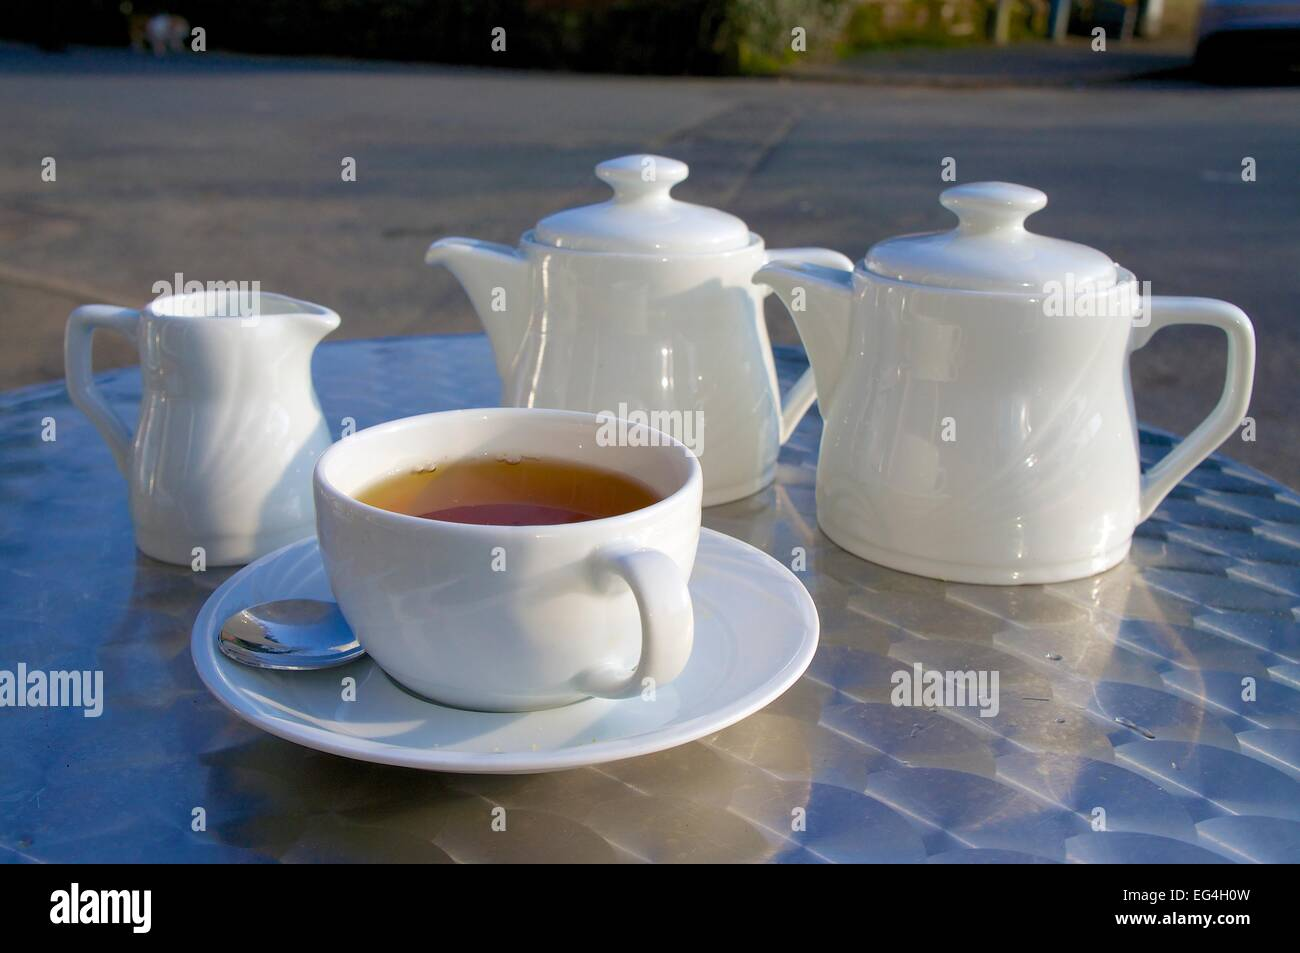 Cup of tea and tea pot on stainless steal table. - Stock Image